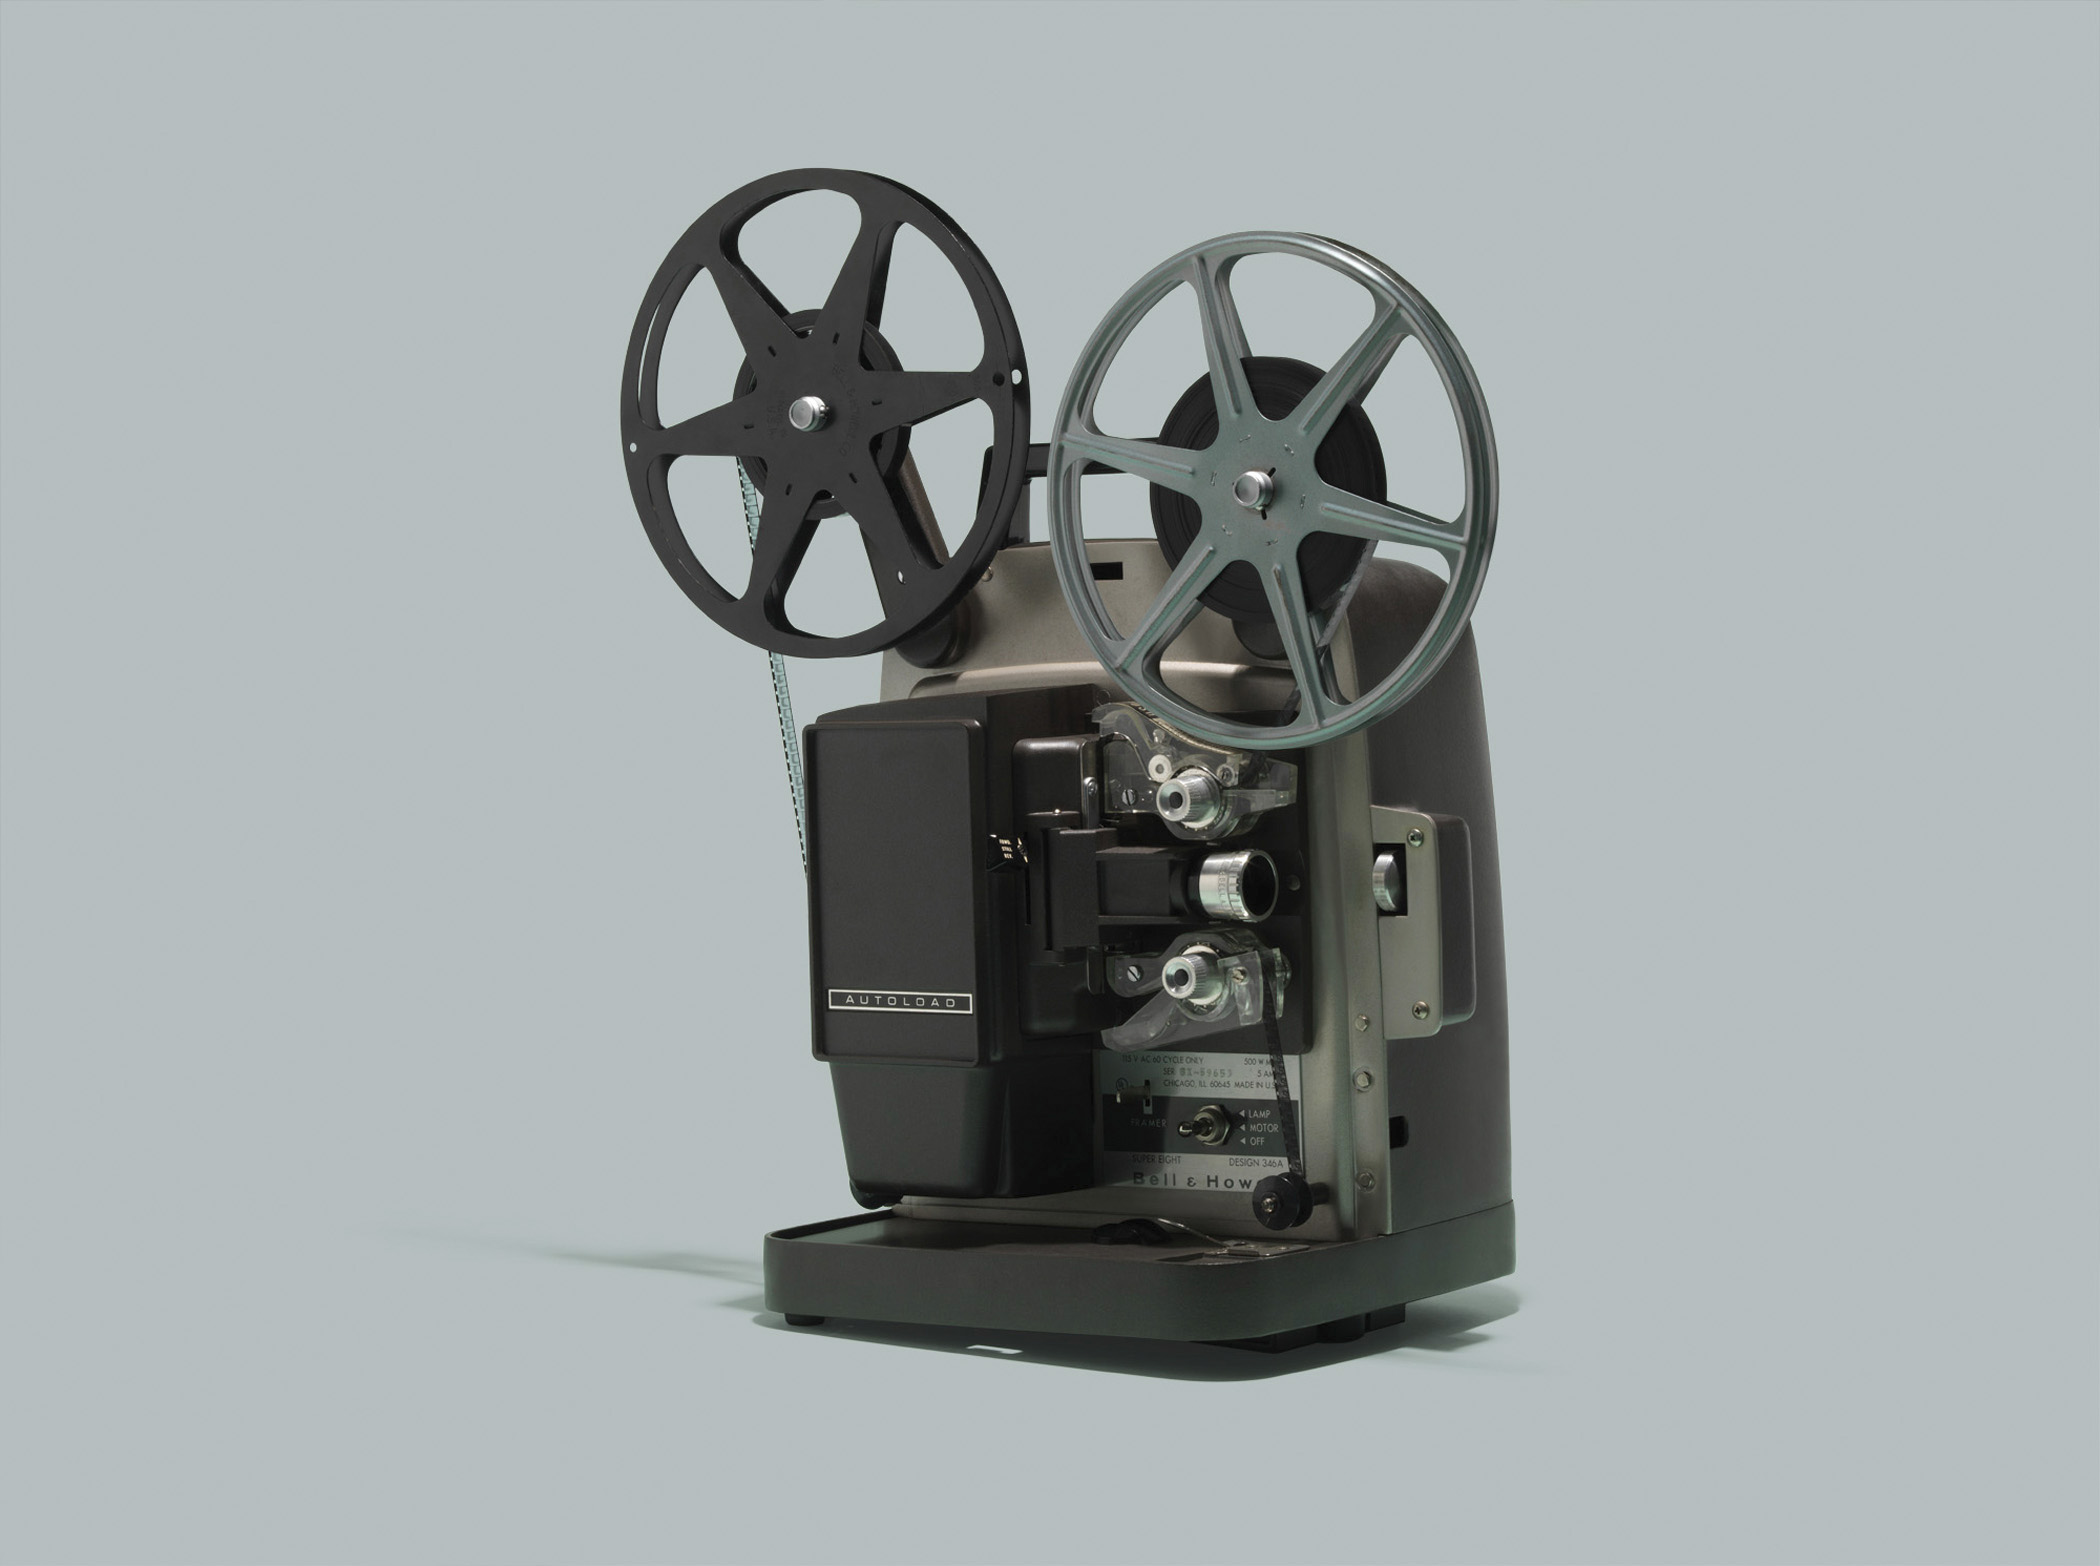 """Bell &amp; Howell Autoload Design 346A Super 8 projector. In 1965, Bell &amp; Howell offered four projector models priced at $95 to $215, per the <a href=""""http://query.nytimes.com/gst/abstract.html?res=9C05E0D91F38E13ABC4A53DFB366838E679EDE"""" title=""""New York Times"""" target=""""_blank"""">New York Times</a>.  <strong>Today's equivalent:</strong> Epson EX5220 Wireless XGA 3LCD Projector. List price $549.99, available for $490.18 on <a href=""""http://www.amazon.com/Epson-EX5220-Wireless-Projector-V11H551020/dp/B00E87E1LK/ref=sr_1_1?ie=UTF8&amp;qid=1411150455&amp;sr=8-1&amp;keywords=Epson+EX5220+Wireless+XGA+3LCD+Projector"""" title=""""Amazon.com"""" target=""""_blank"""">Amazon.com</a>."""